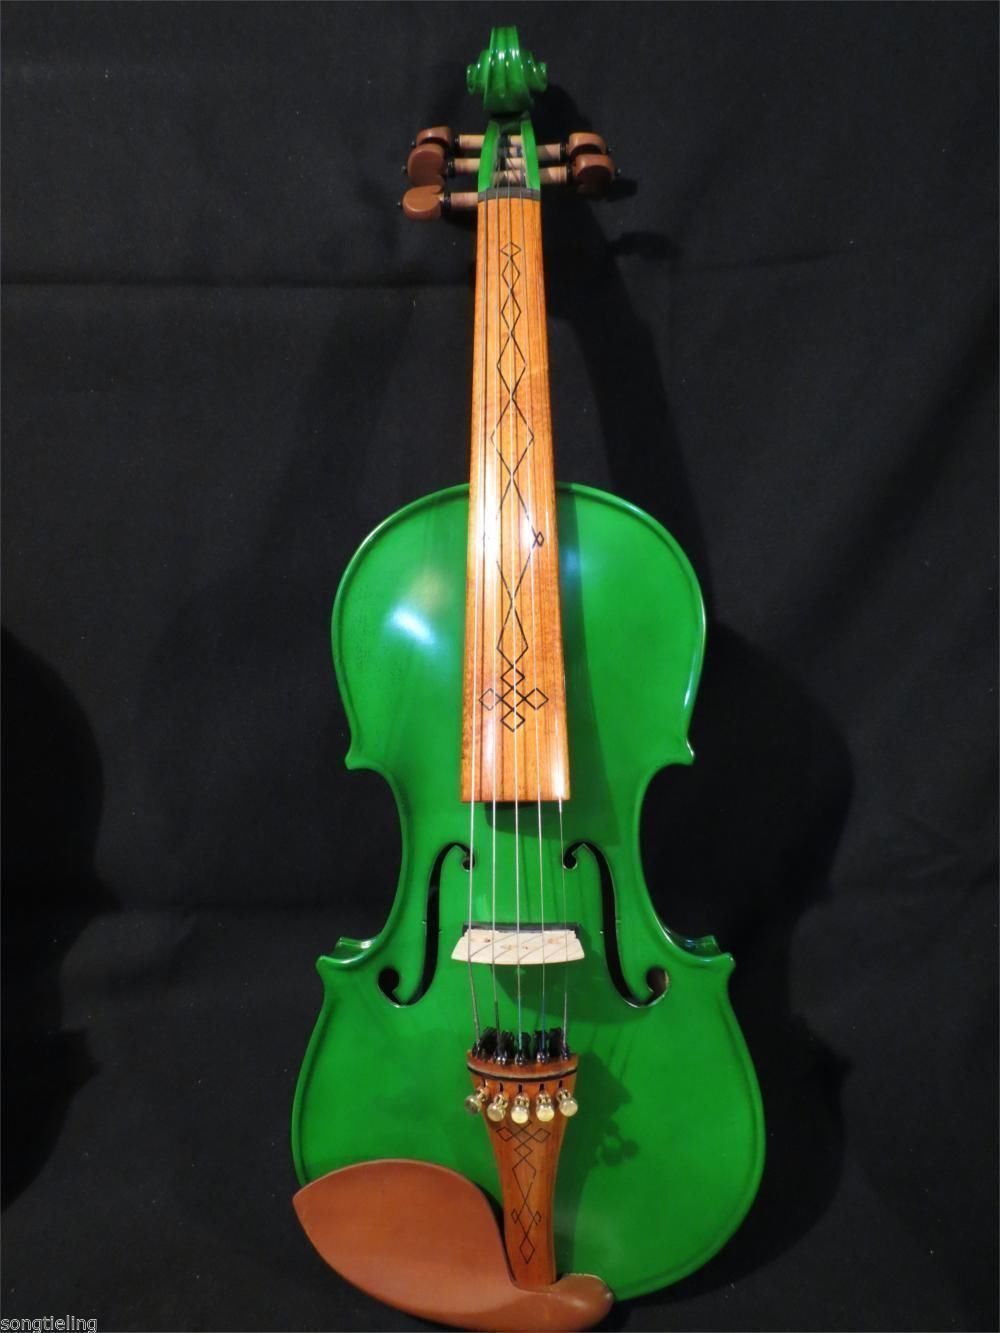 Handmade Top New Green Color Electric Violin 5 Strings 4/4 Electric Violin Acoustic Violino Great Sound new 4 string 4 4 electric acoustic violin patent silent fine sound 1